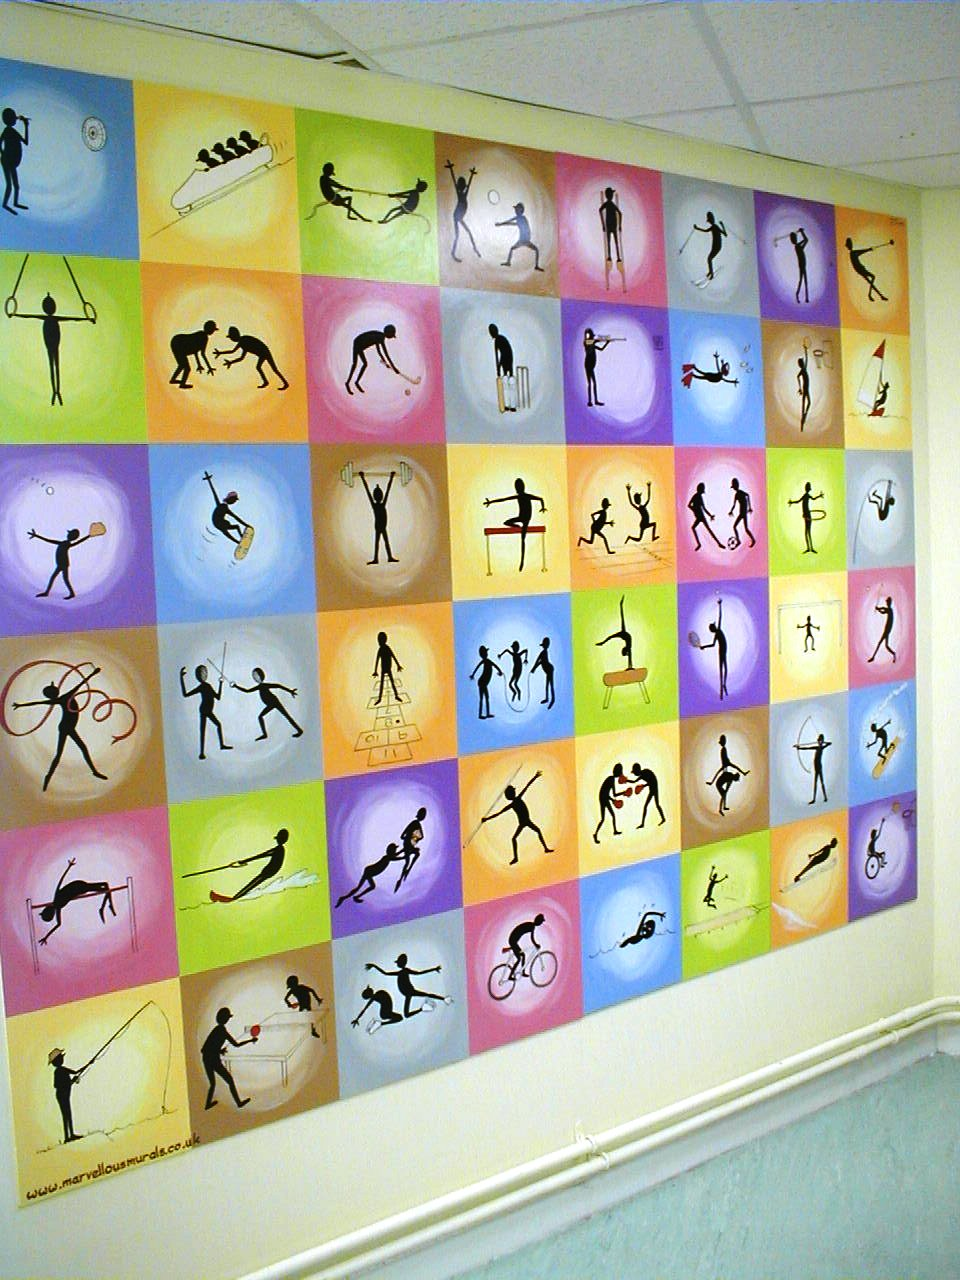 design 720540 sports murals sports murals by andrew goralski school sports mural sports murals